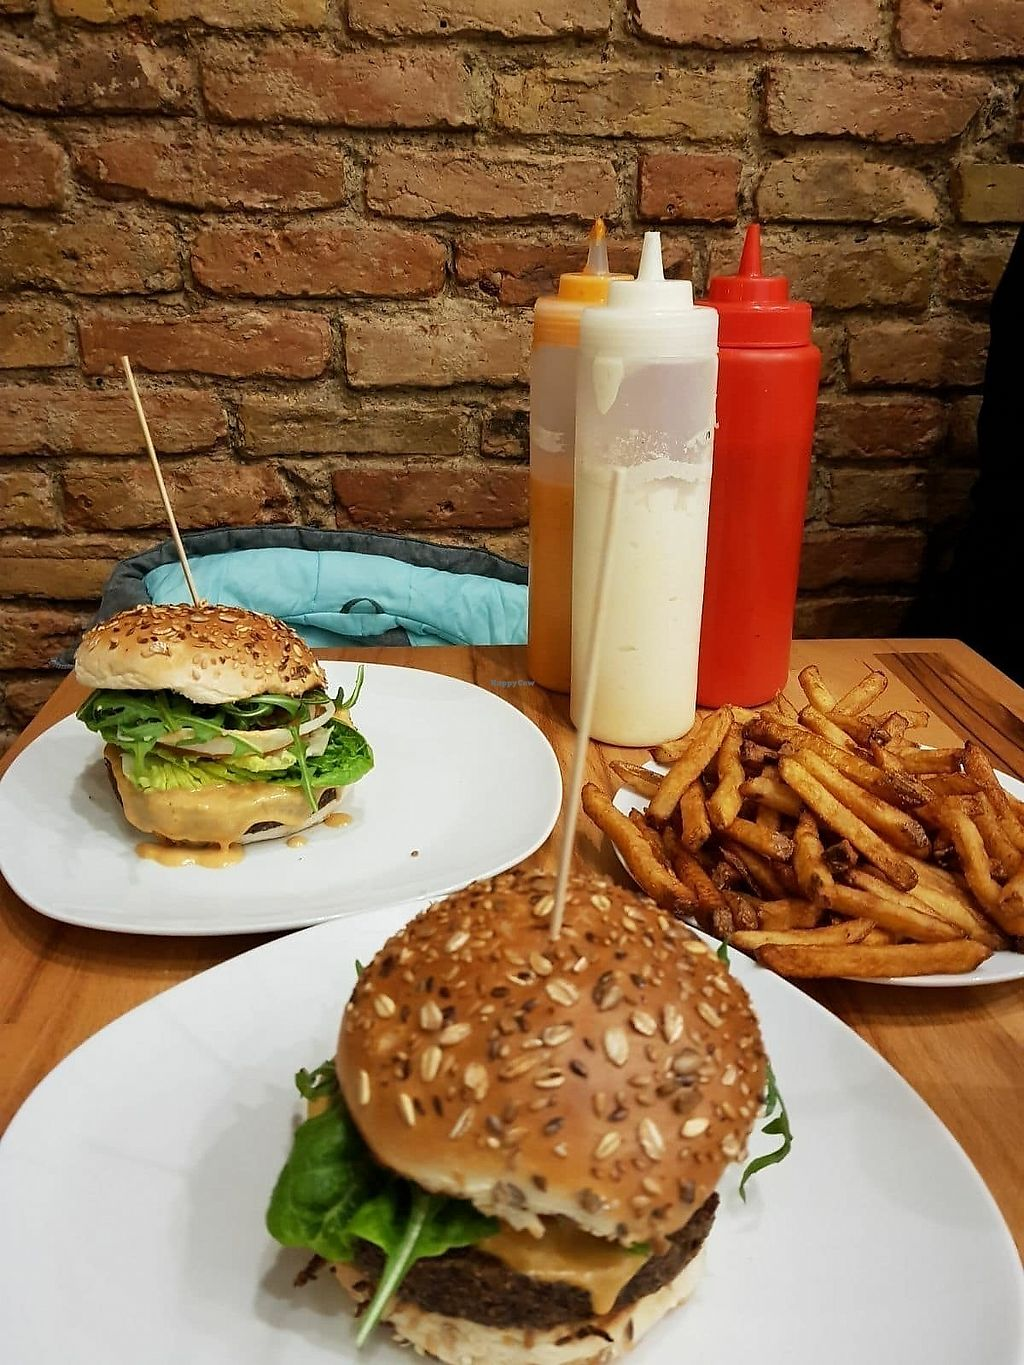 """Photo of Lia's Kitchen  by <a href=""""/members/profile/vegan.goddammit"""">vegan.goddammit</a> <br/>Quinoa-lentils burgers and fries <br/> March 12, 2018  - <a href='/contact/abuse/image/82729/369810'>Report</a>"""